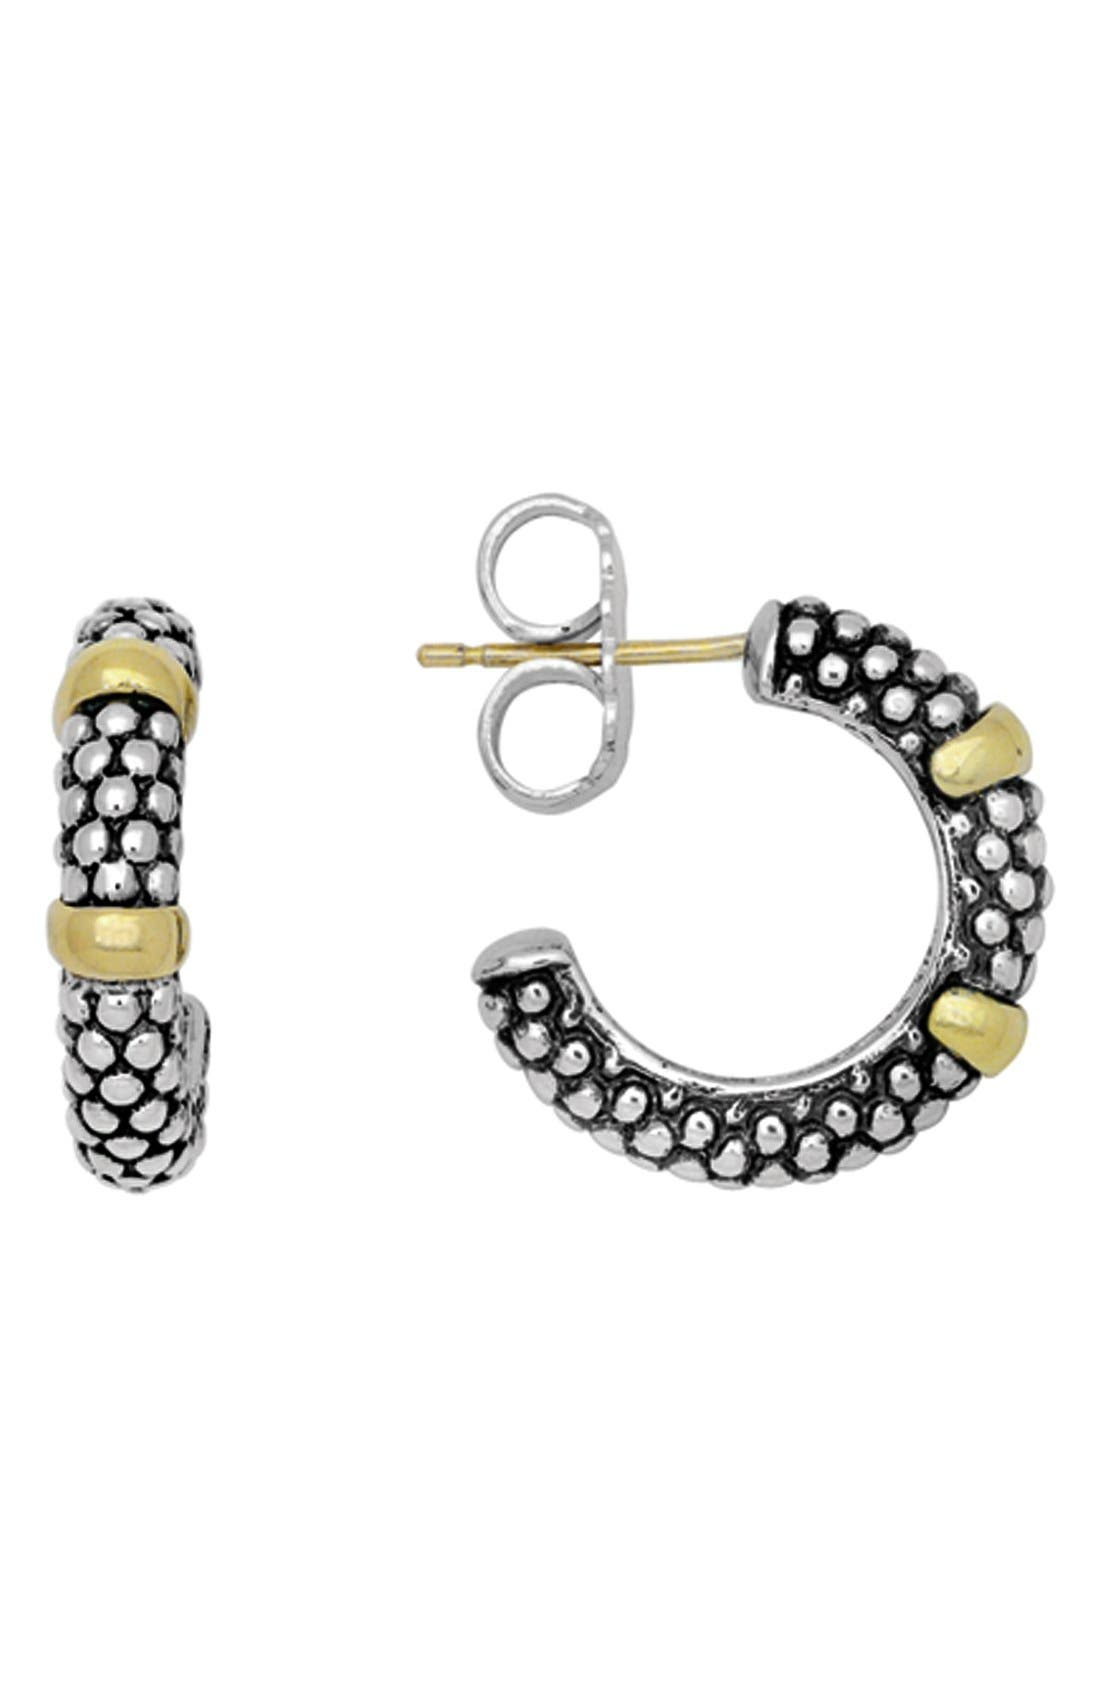 Two Tone Caviar Hoop Earrings,                             Main thumbnail 1, color,                             Sterling Silver/ Gold